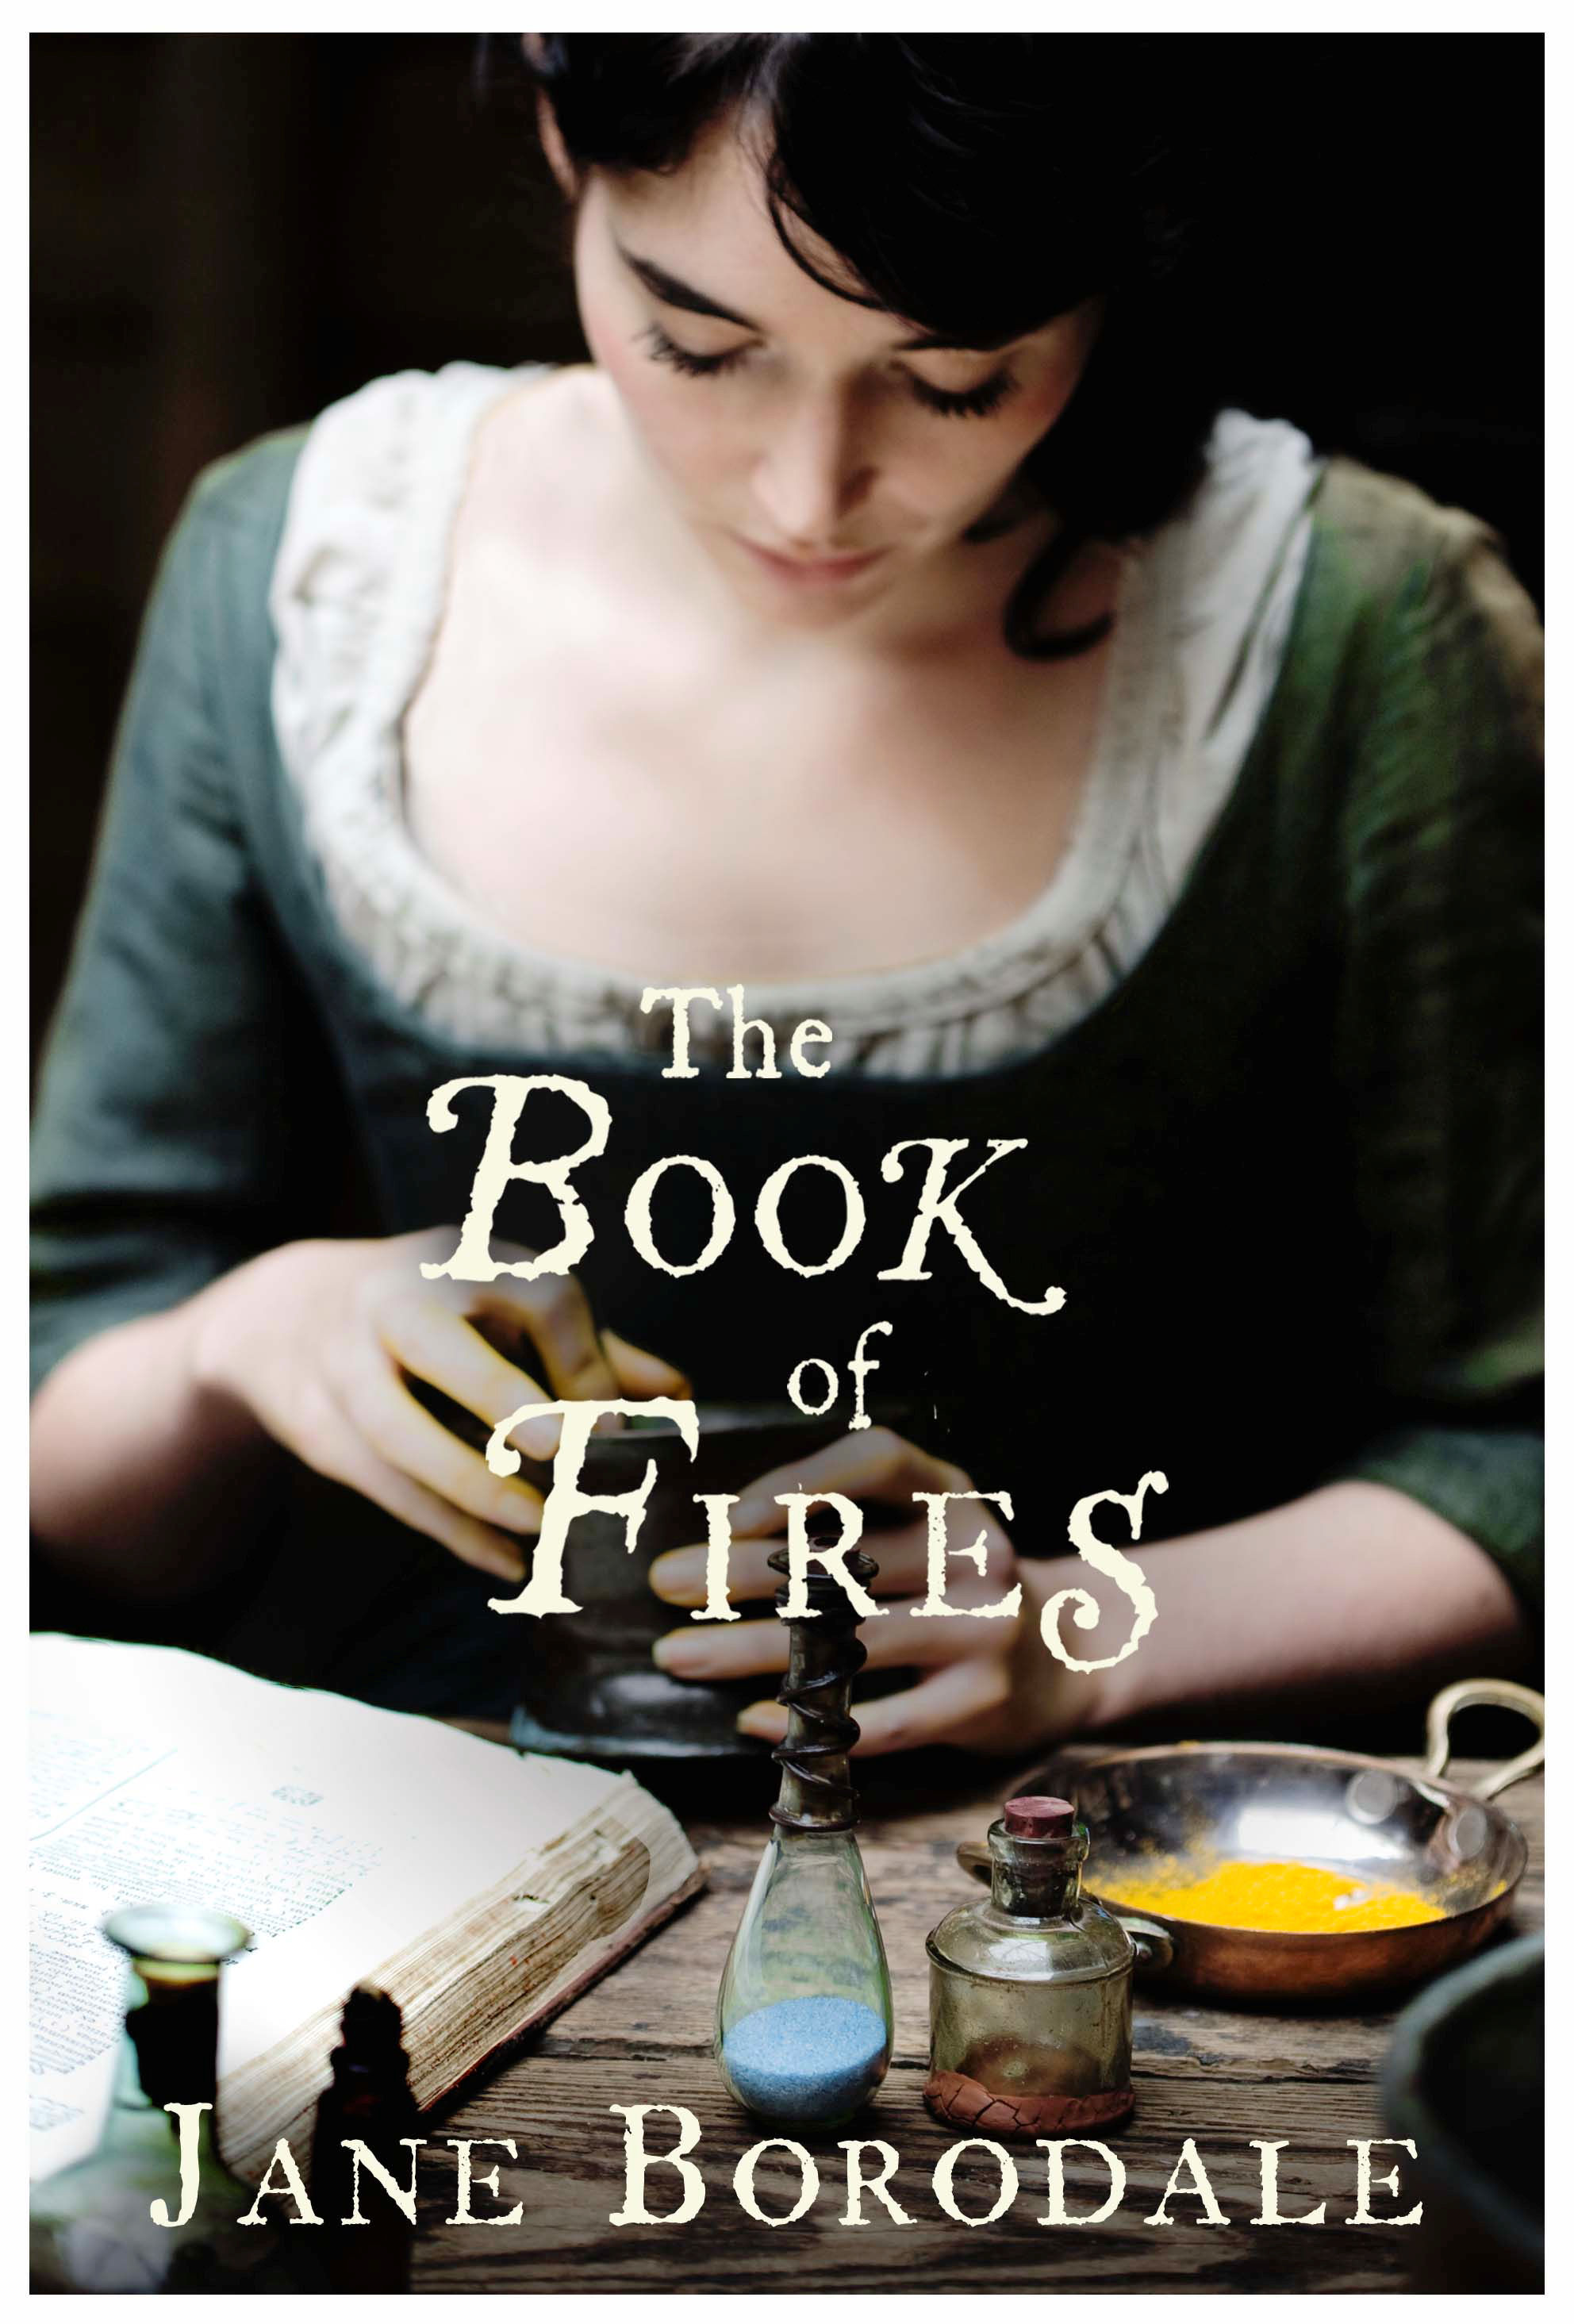 A THE BOOK OF FIRES